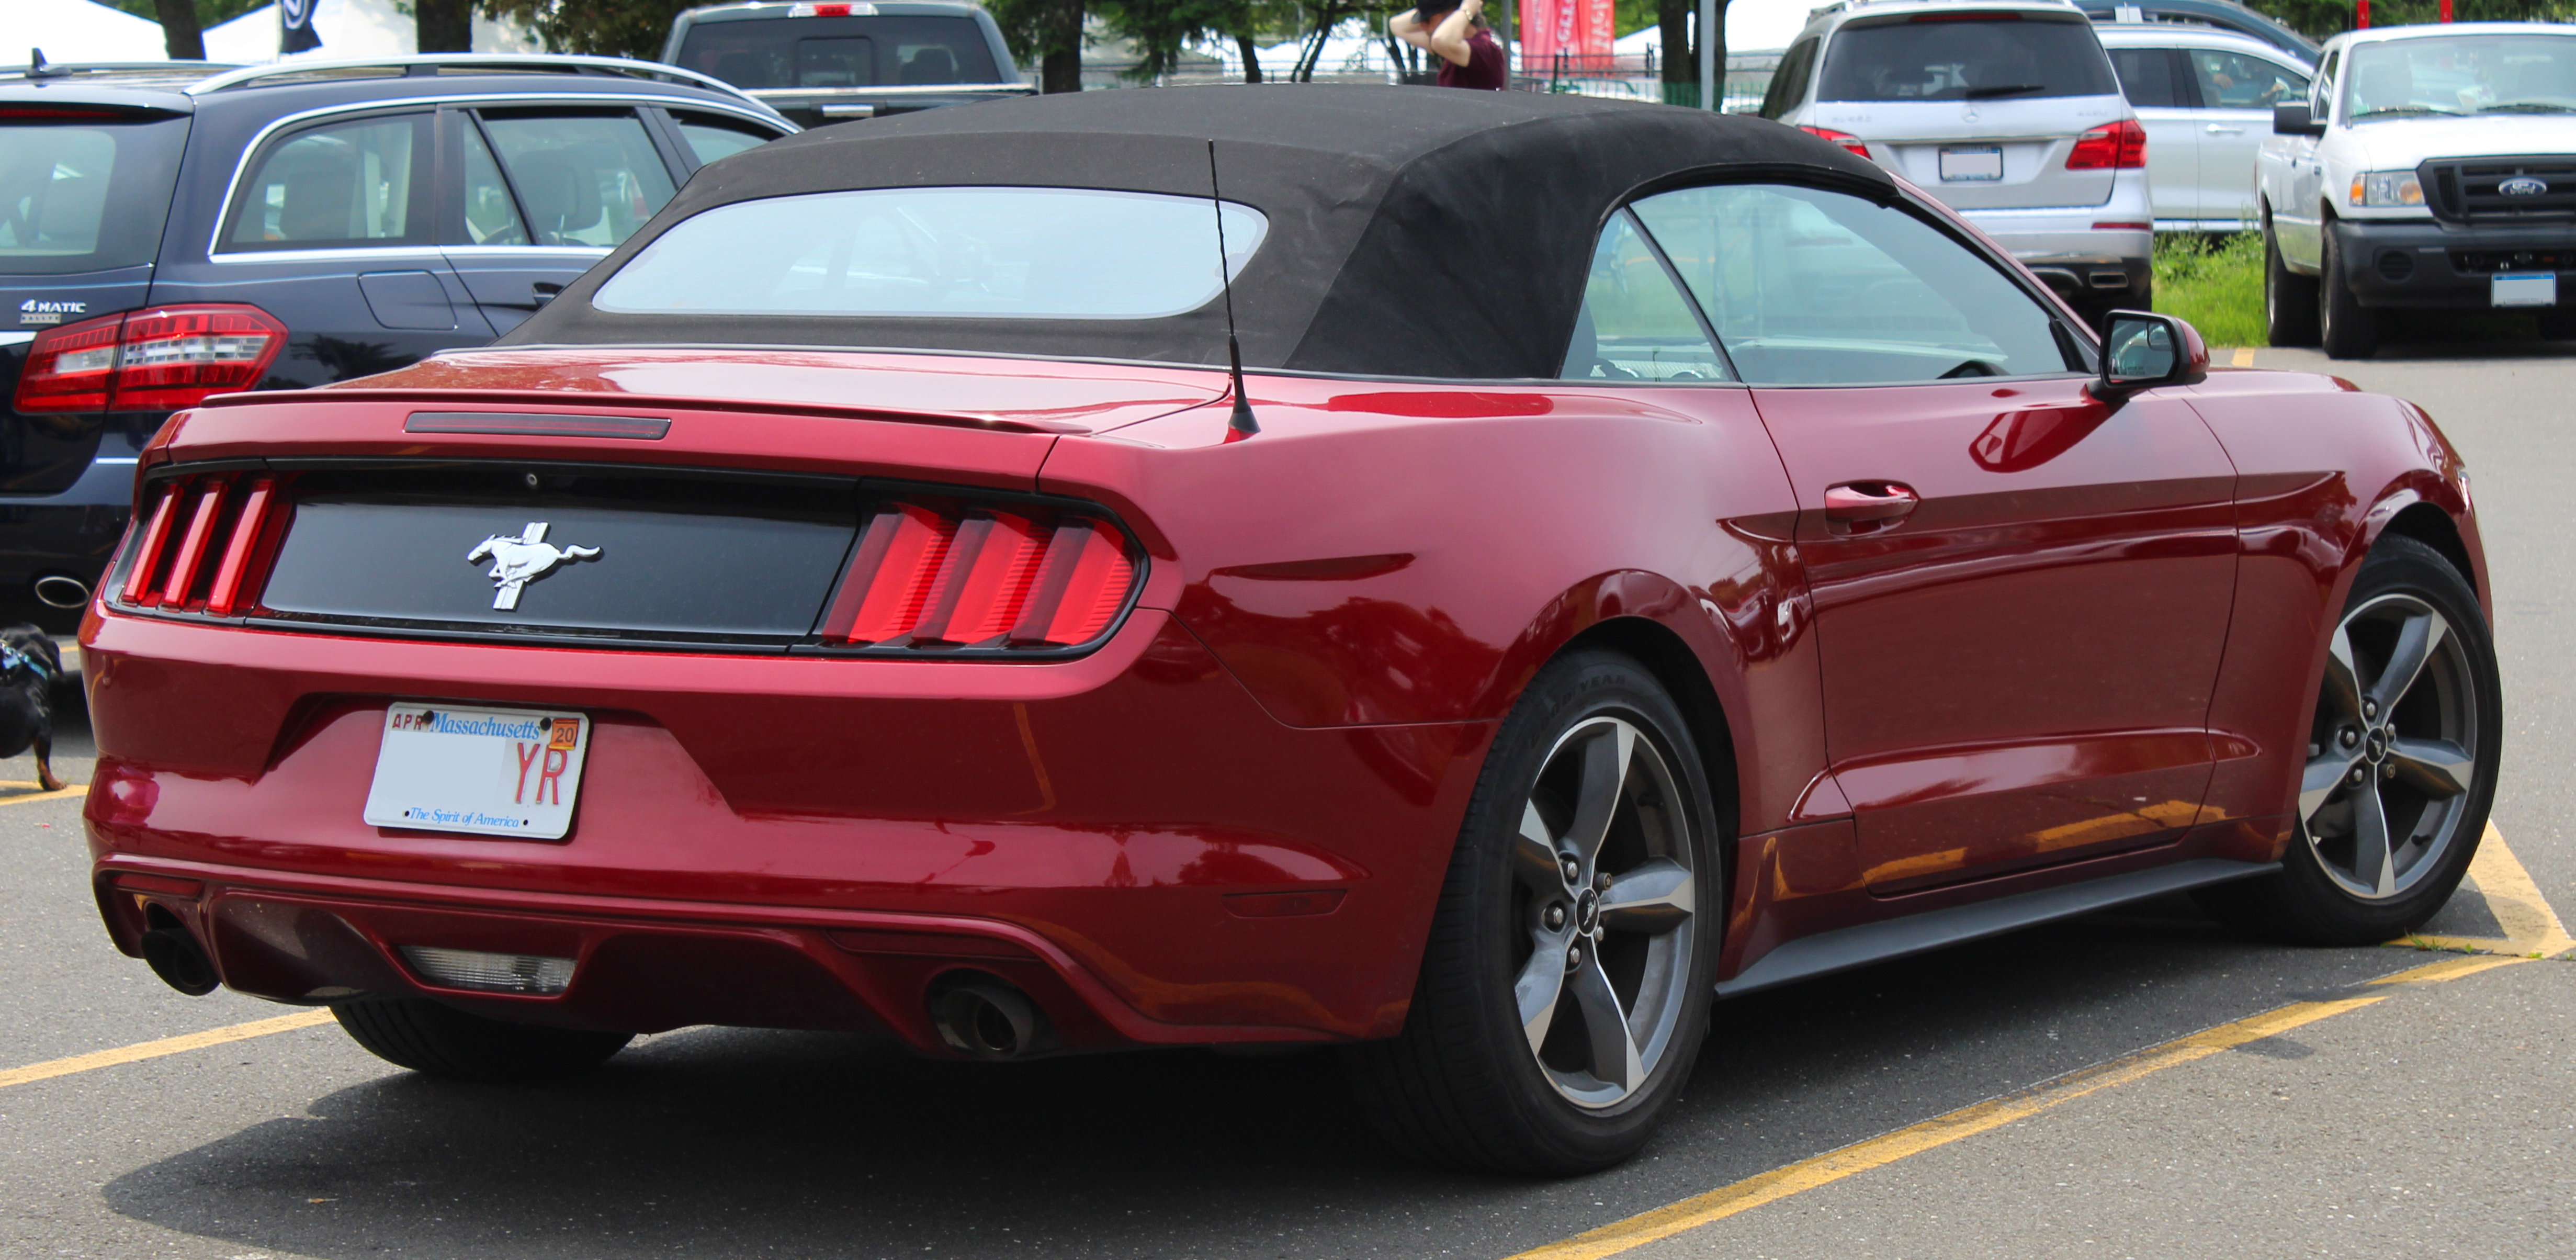 https commons wikimedia org wiki file 2015 ford mustang convertible 3 7l v6 rear hagerty 6 1 19 jpg